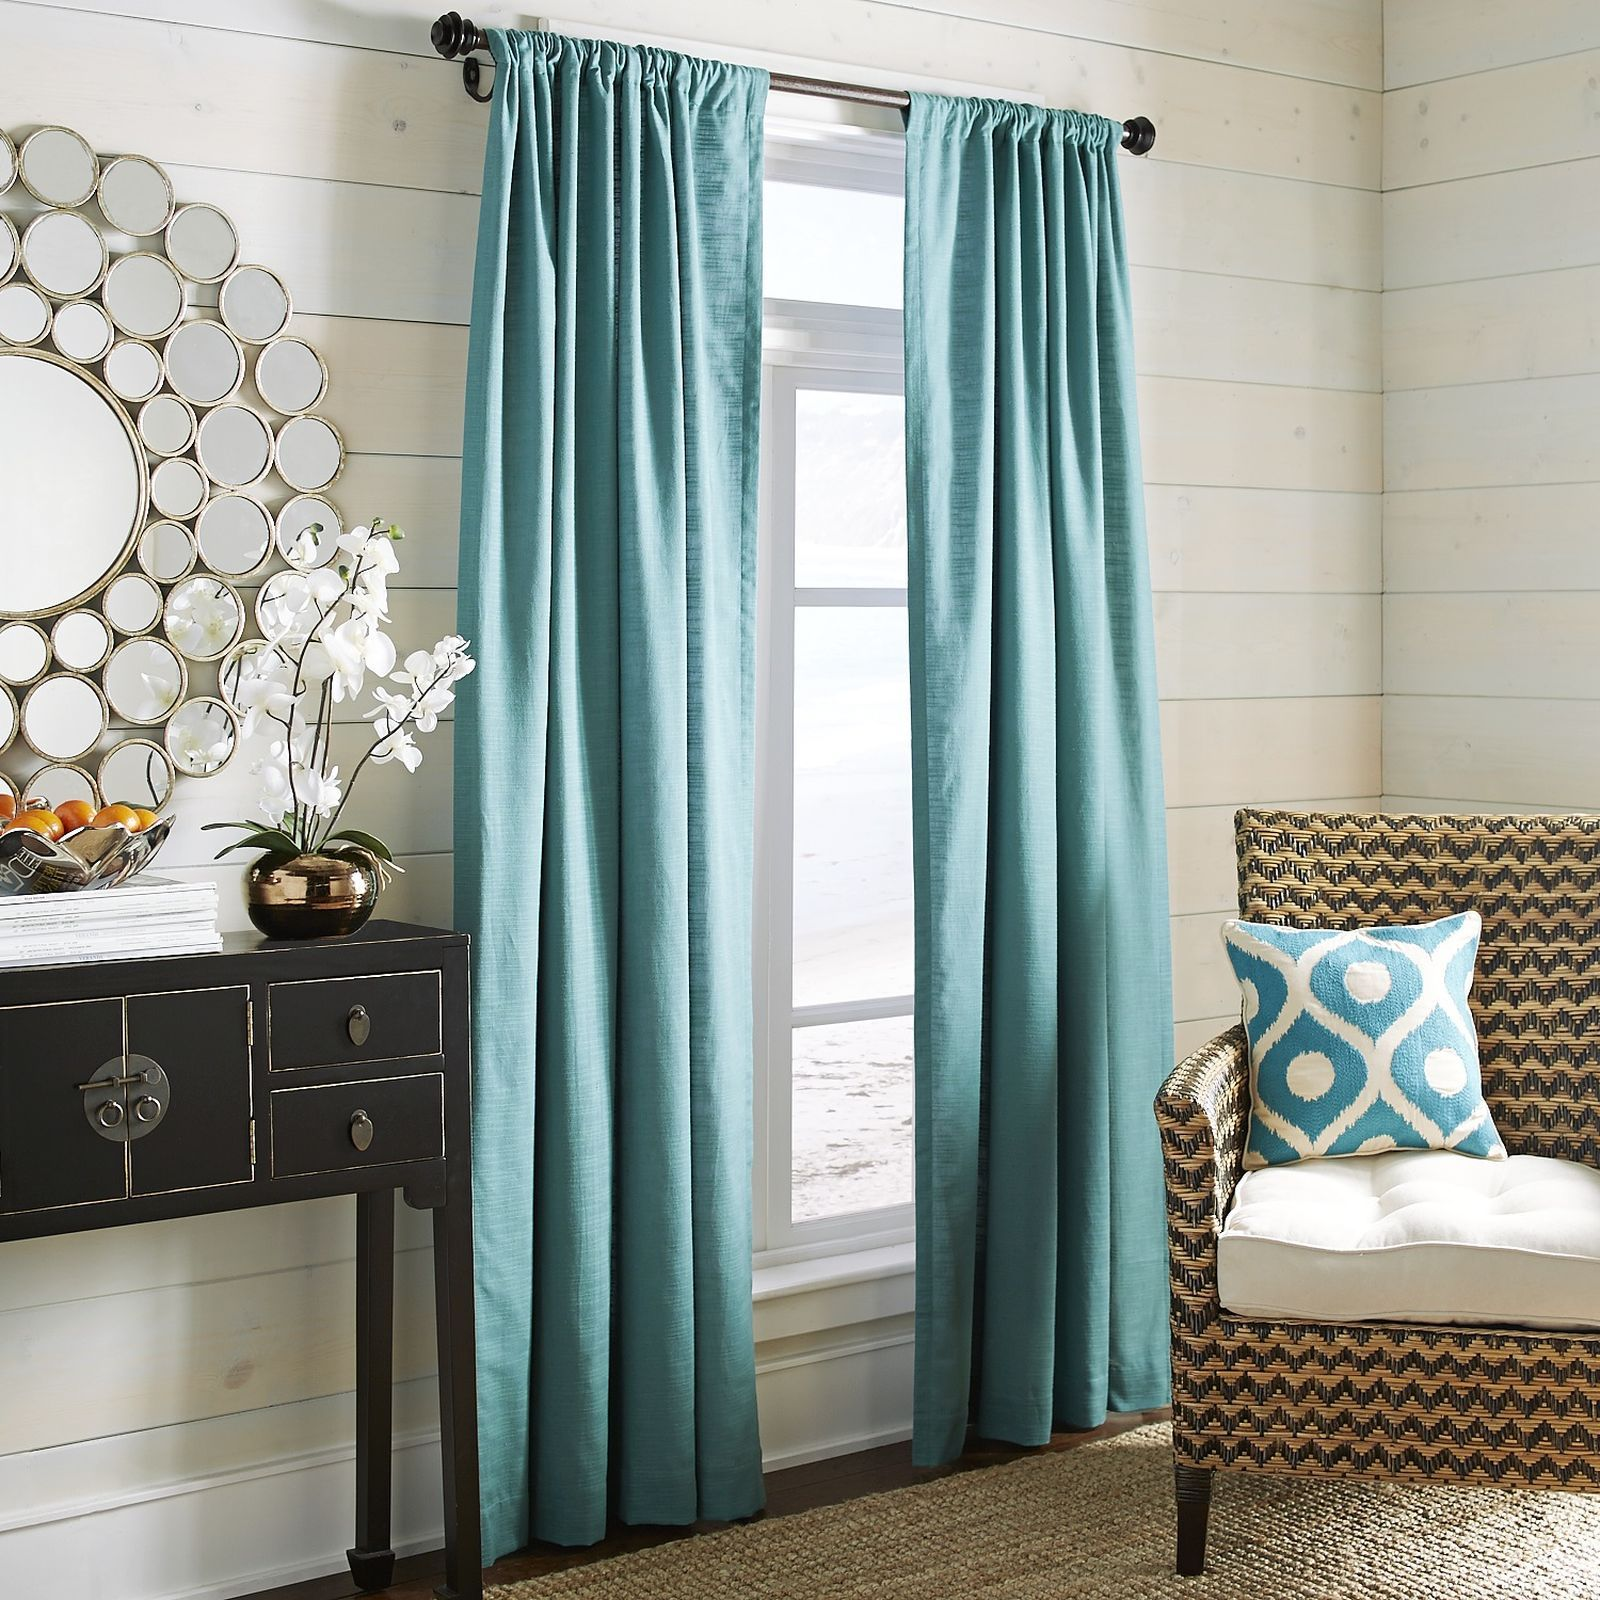 aqua and brown living room curtains false ceiling designs for photos india whitley curtain teal pier 1 imports decor